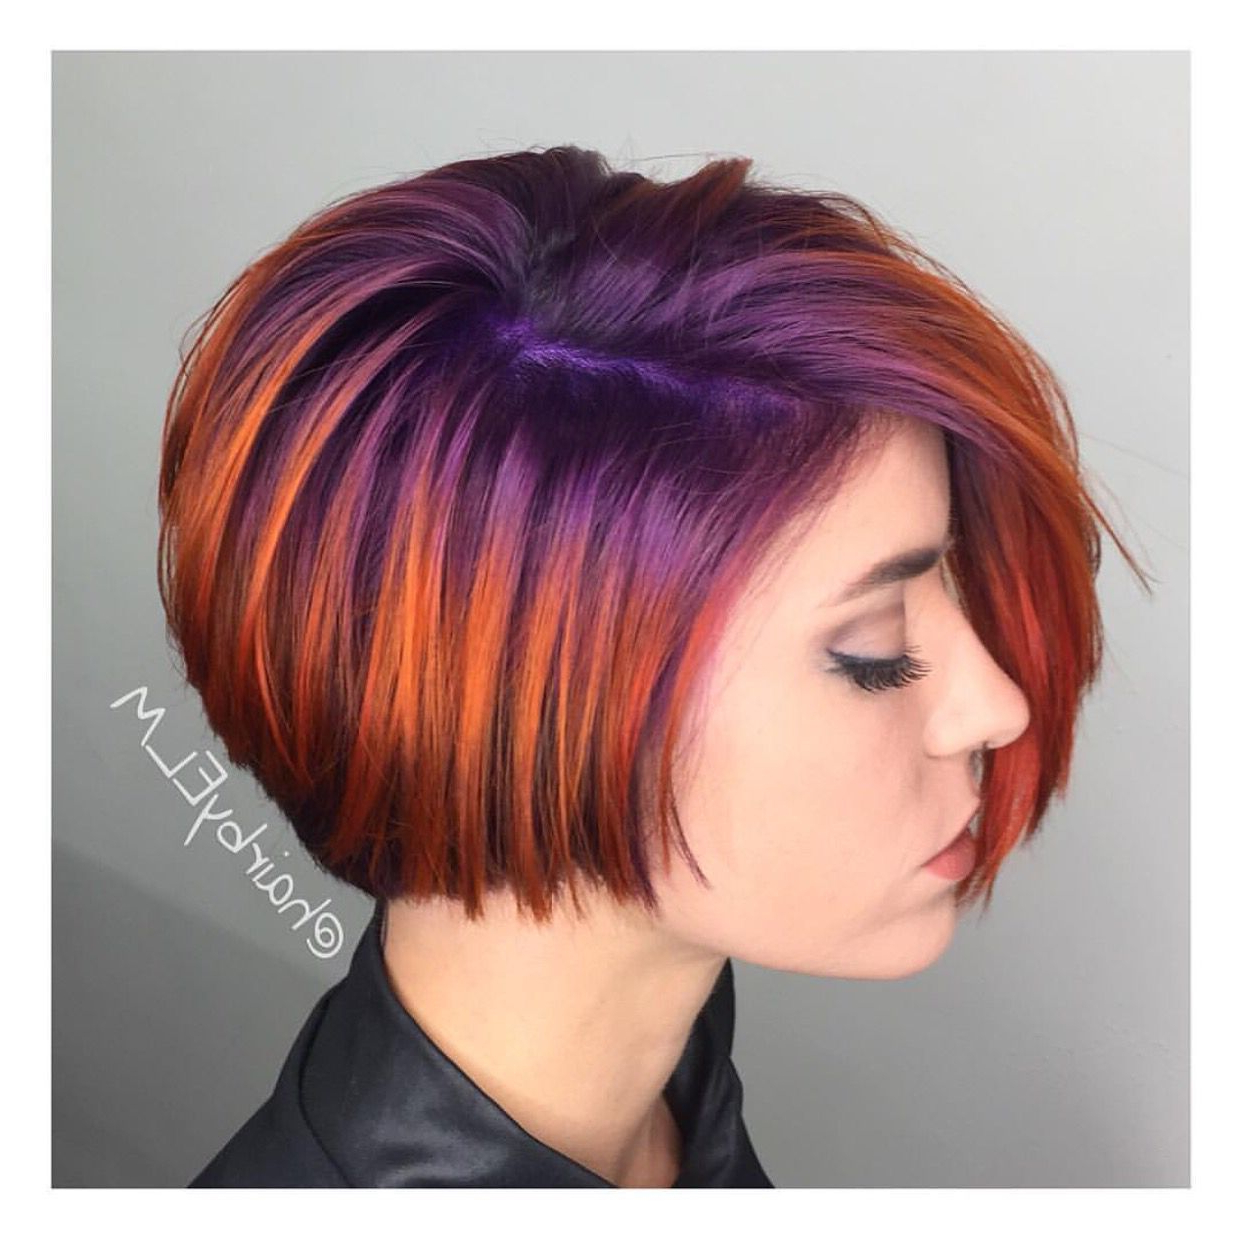 ? We Are Loving This Short Haircut With Its Bright Purple To Violet Throughout Bright Red Short Hairstyles (View 3 of 25)